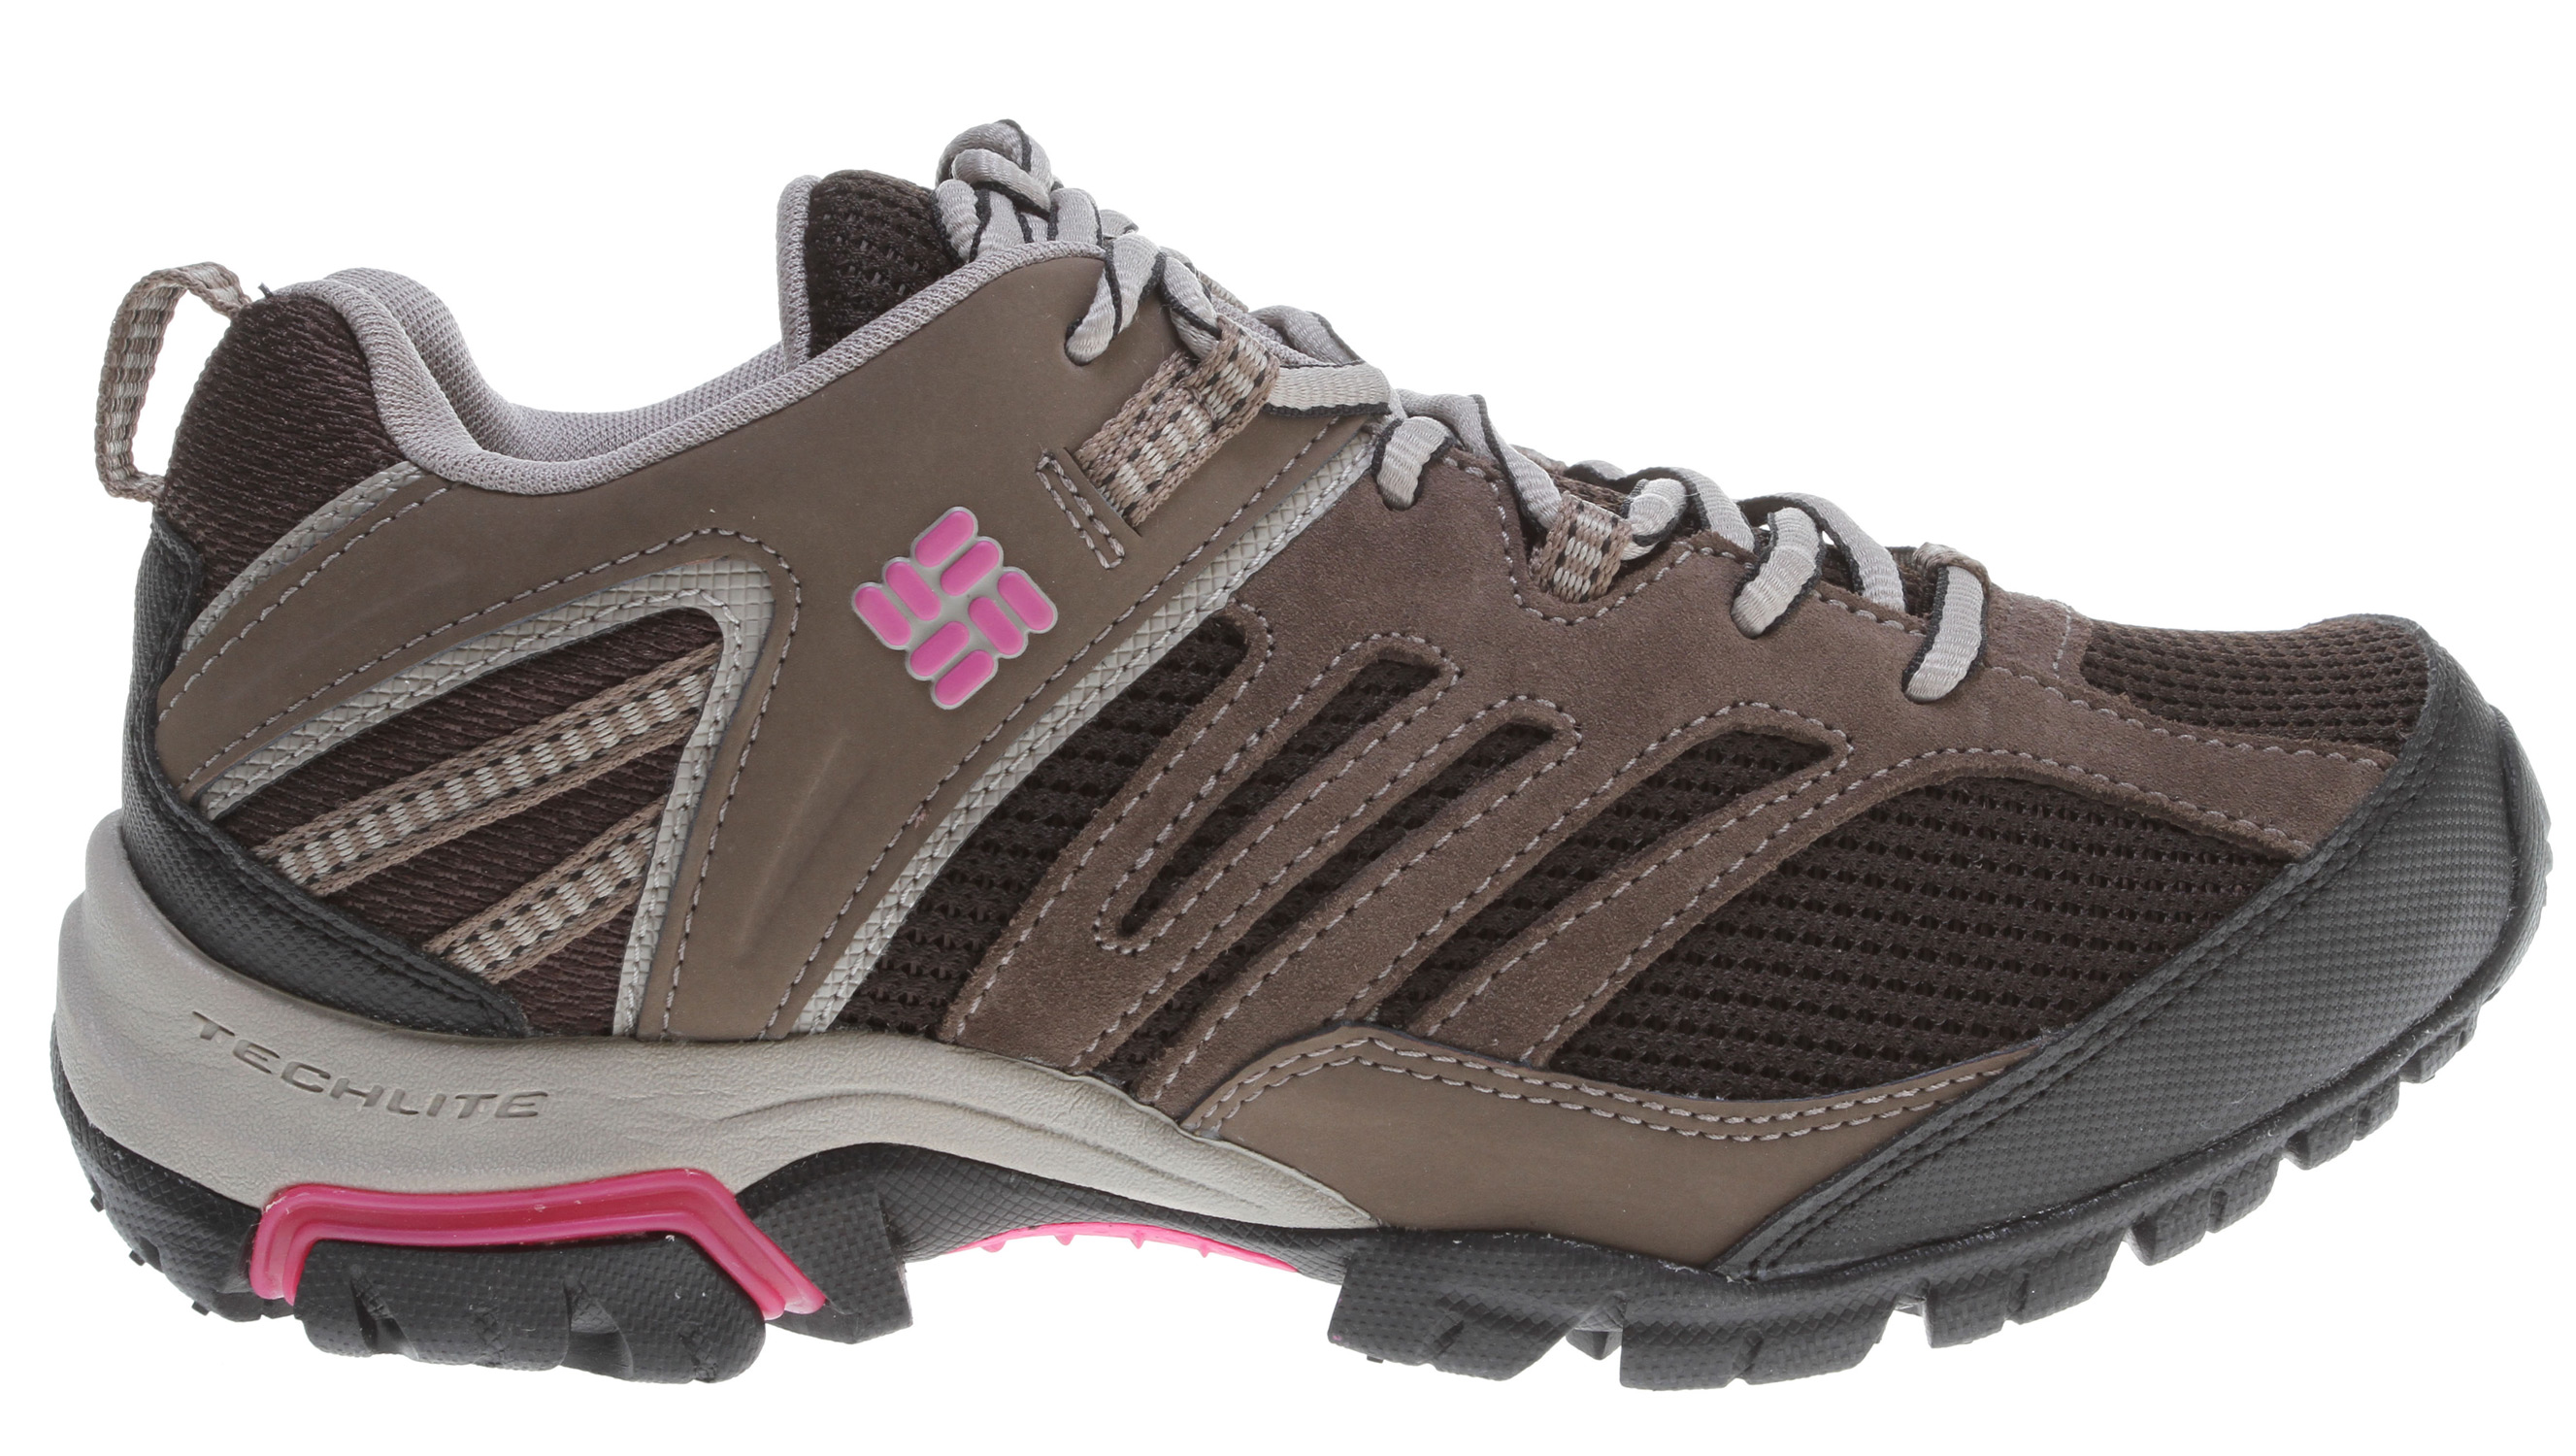 Camp and Hike A lightweight multi-functional trail shoe capable of a variety of outdoor activities.Key Features of the Columbia Shasta Ridge Low Hiking Shoes: UPPER: Leather and textile working with a waterproof Omni-Tech membrane. MIDSOLE: Full length Techlite under foot cushioning and support. OUTSOLE: Non-marking Omni-Grip rubber compound. Independent heel lug design with rubber gasket and a de-coupled heel, all for a great ride on the trail. - $51.95